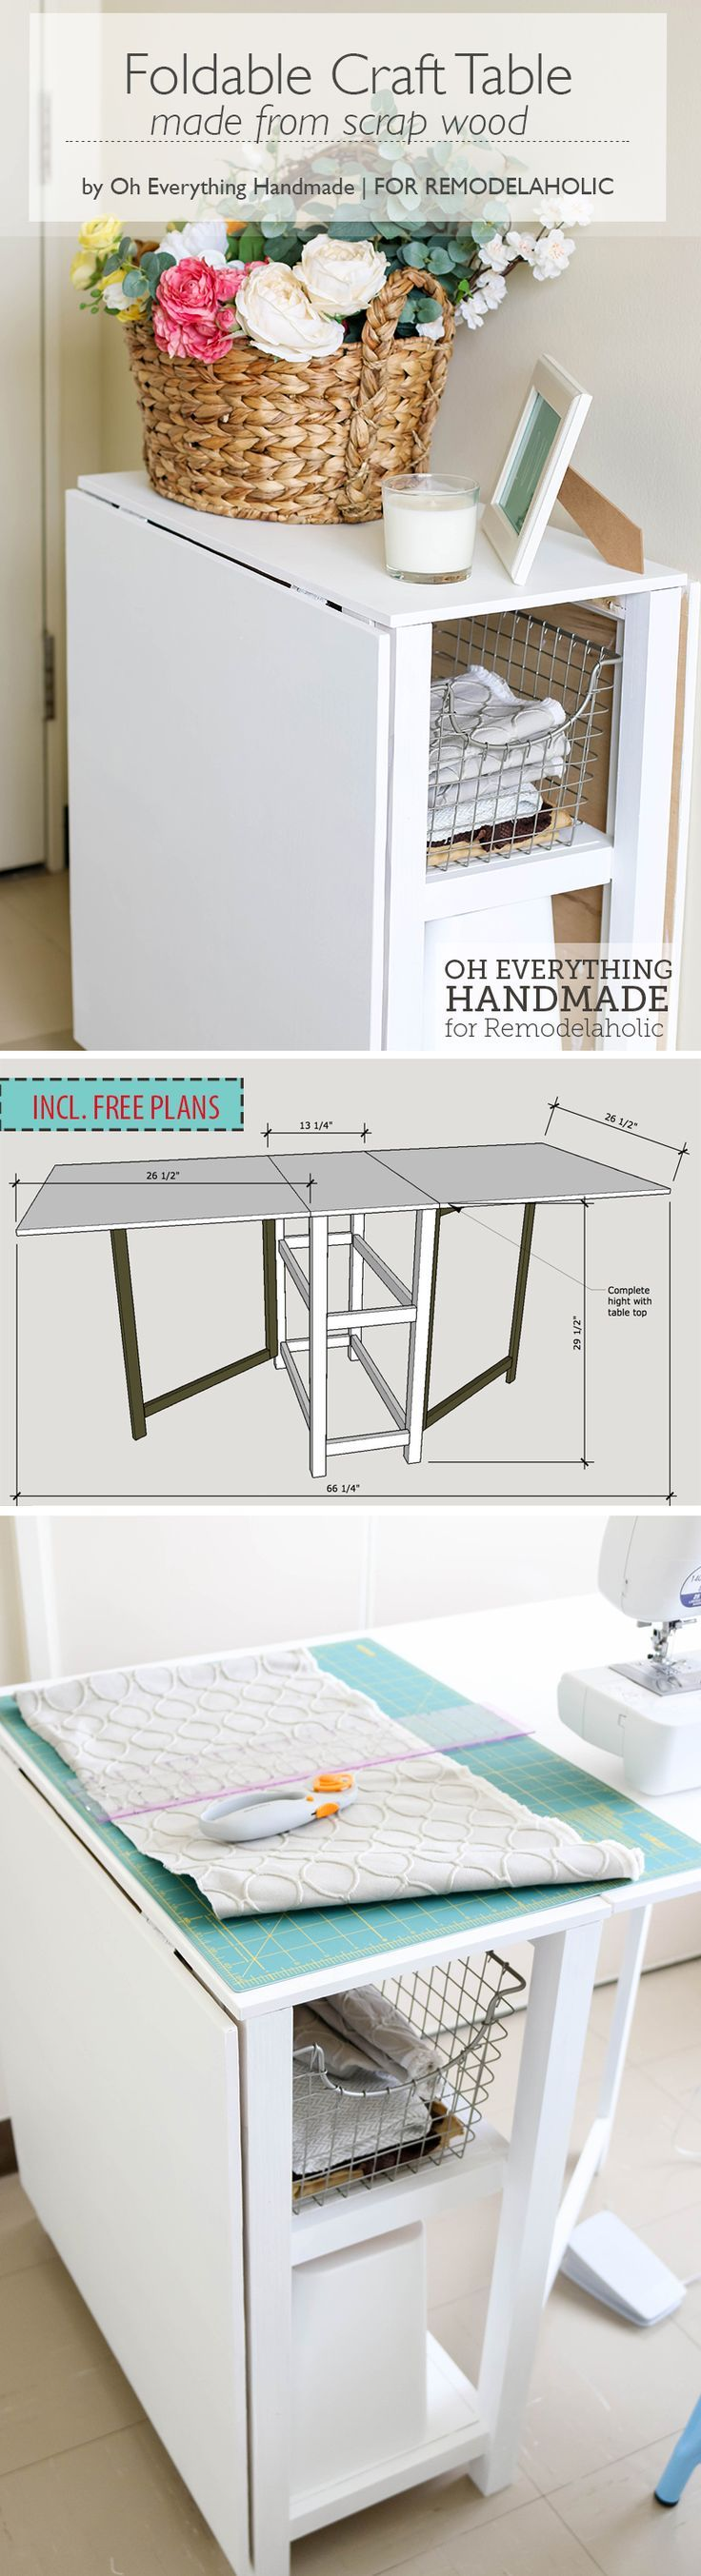 46+ Large craft table diy info